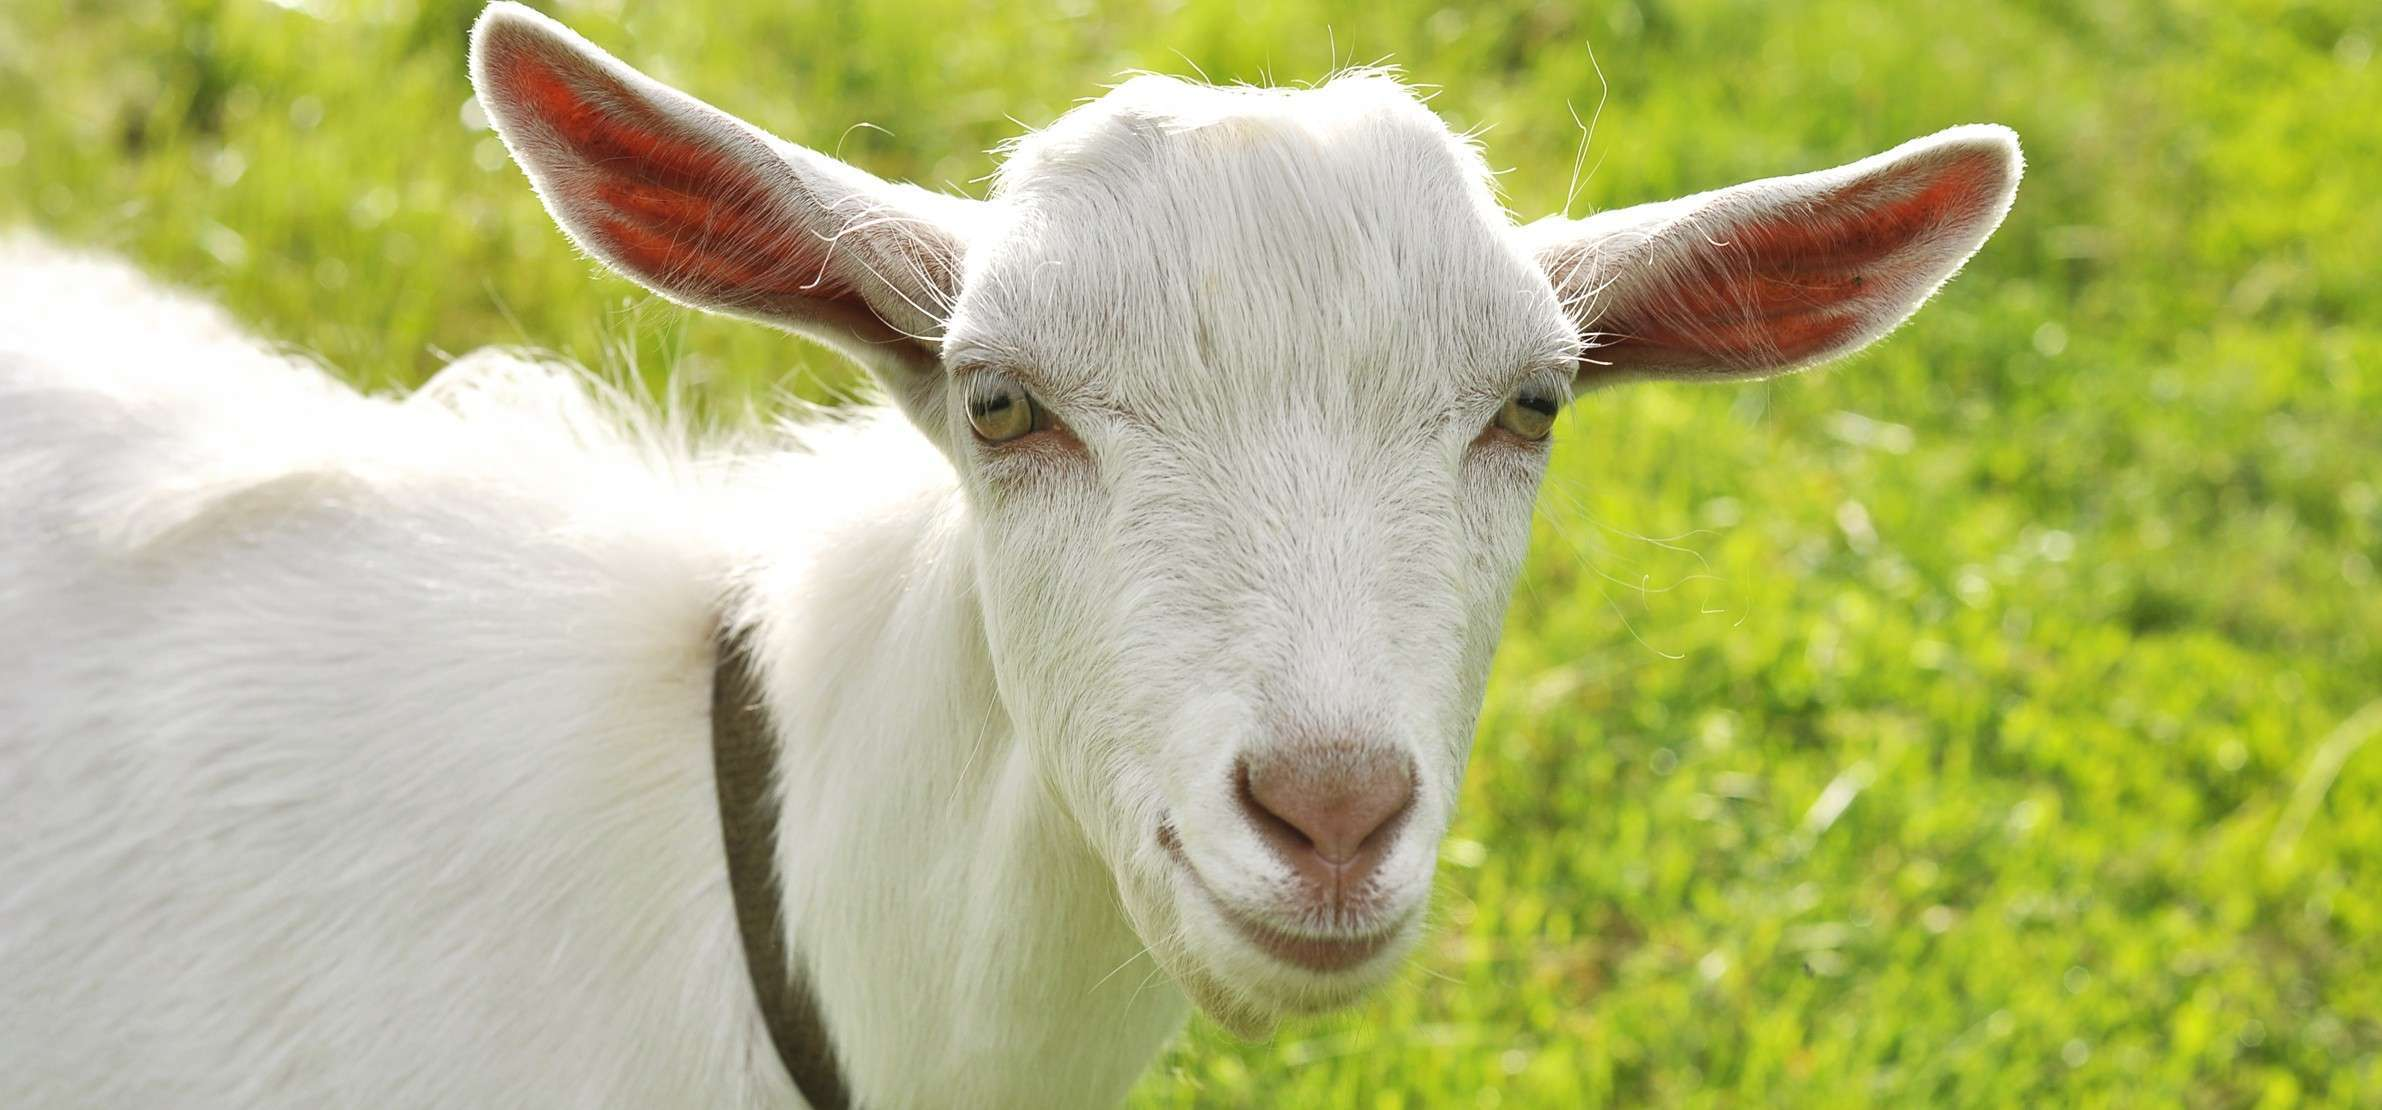 Have you thought about infant milk made from goat milk?